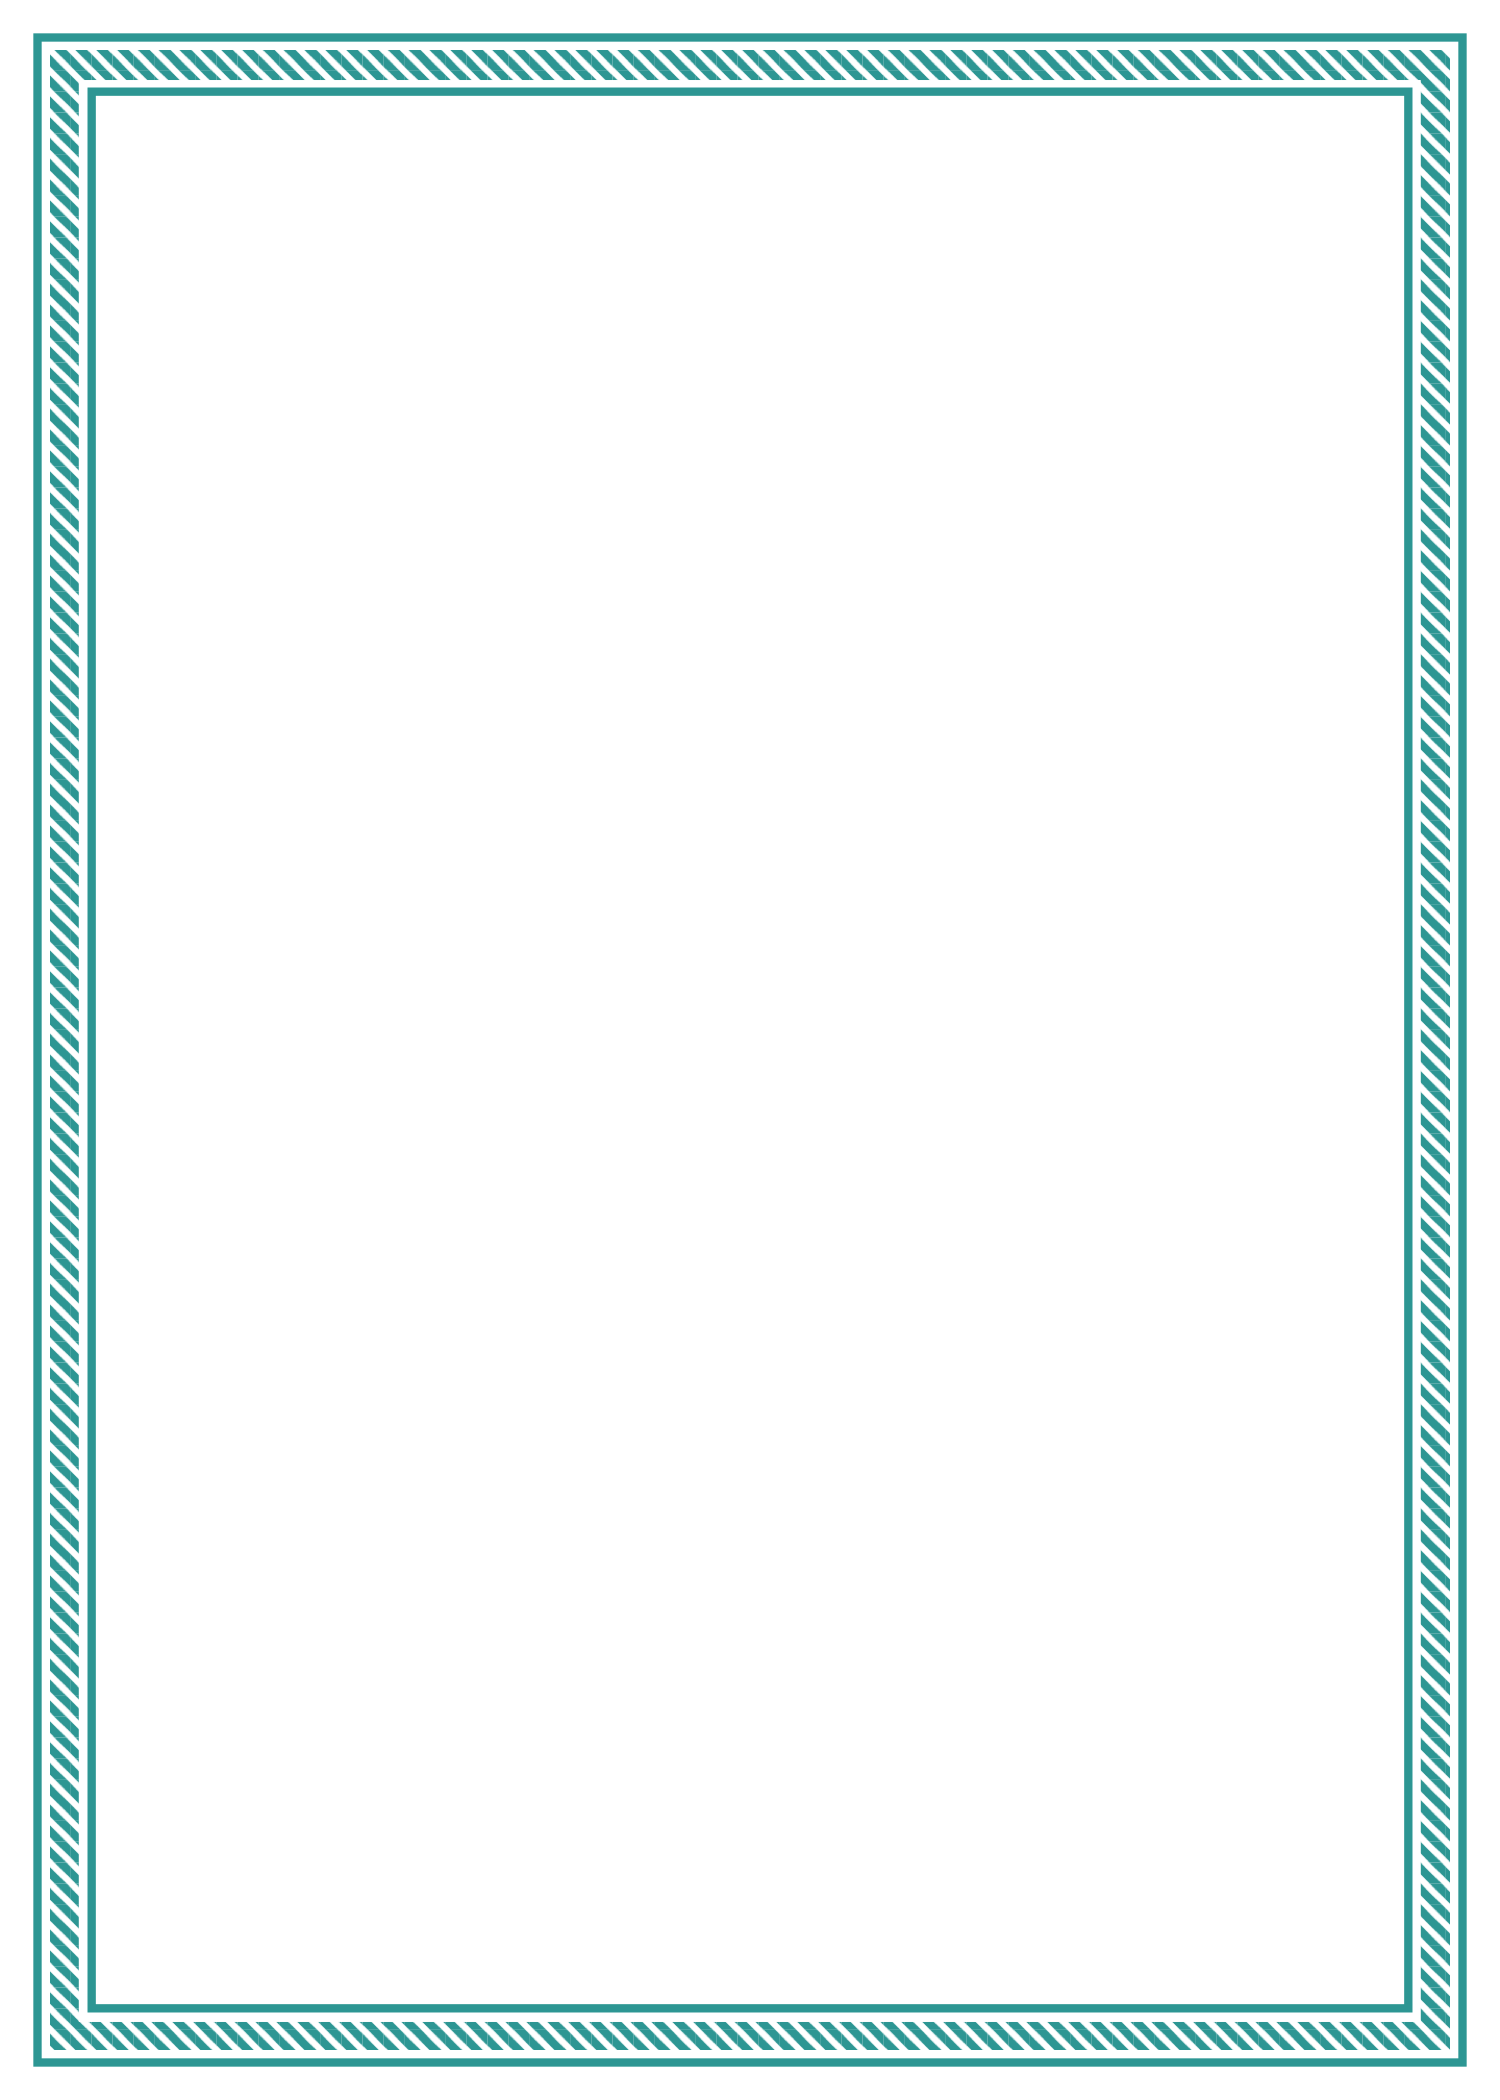 Thin border png. Green candy stripe free